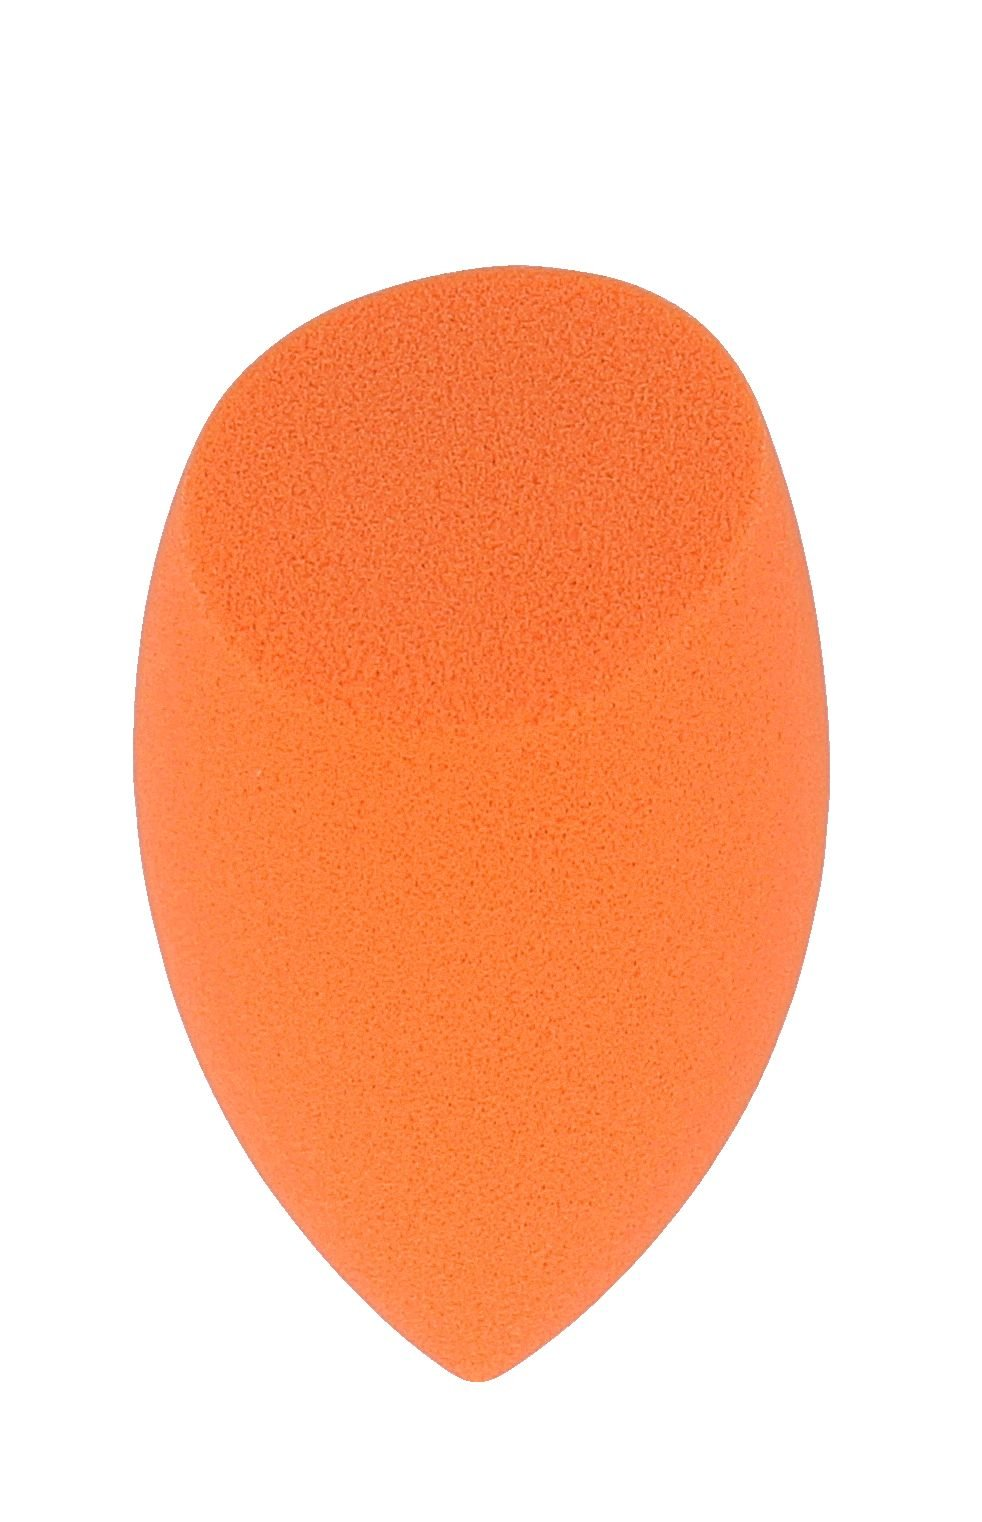 Real Techniques Base Miracle Complexion Sponge Cosmetic 1ks